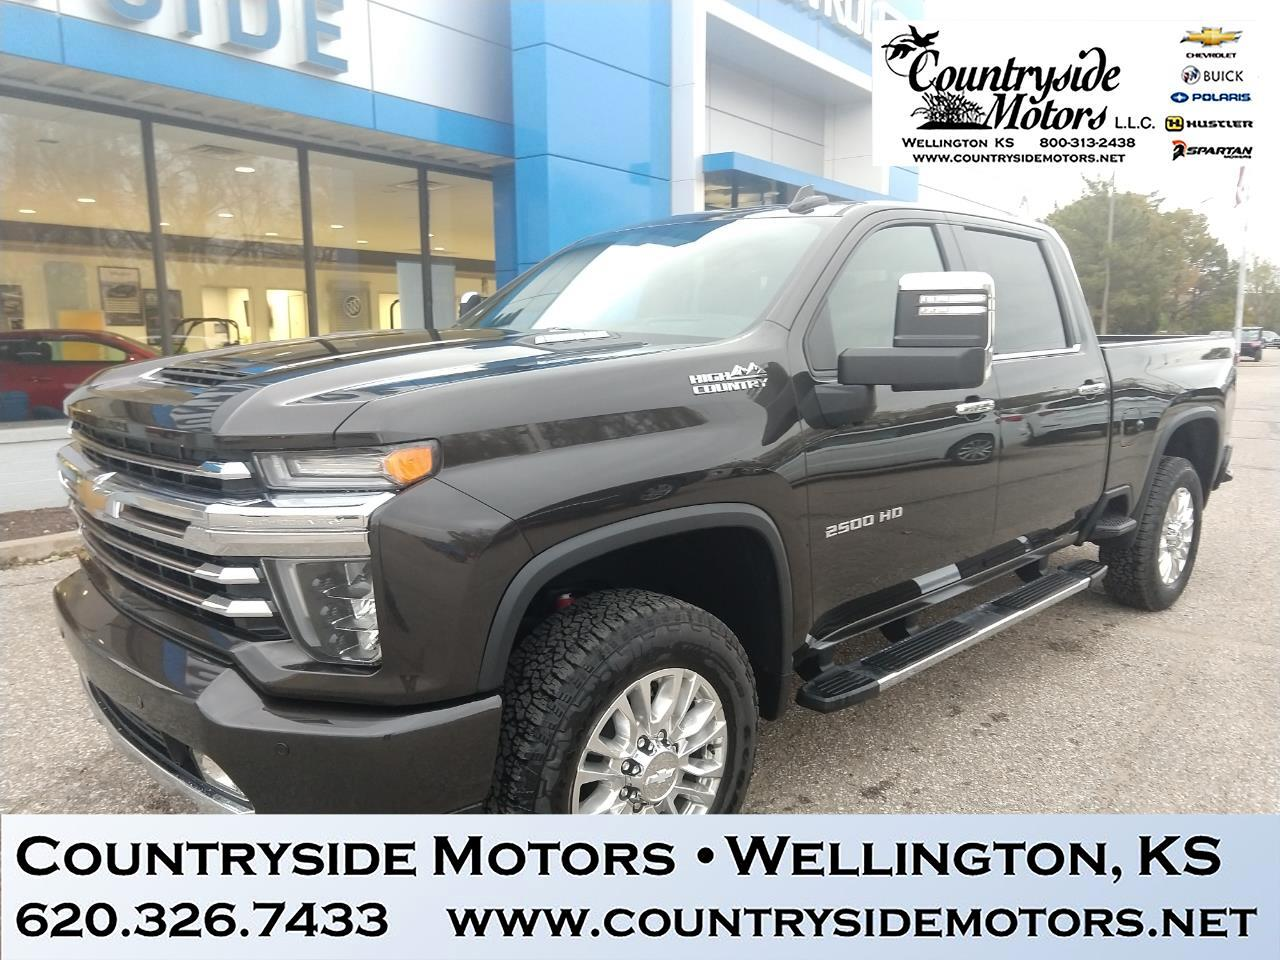 2020 Chevrolet Silverado 2500HD 4WD CREW CAB HIGH COUNTRY PACKAGE